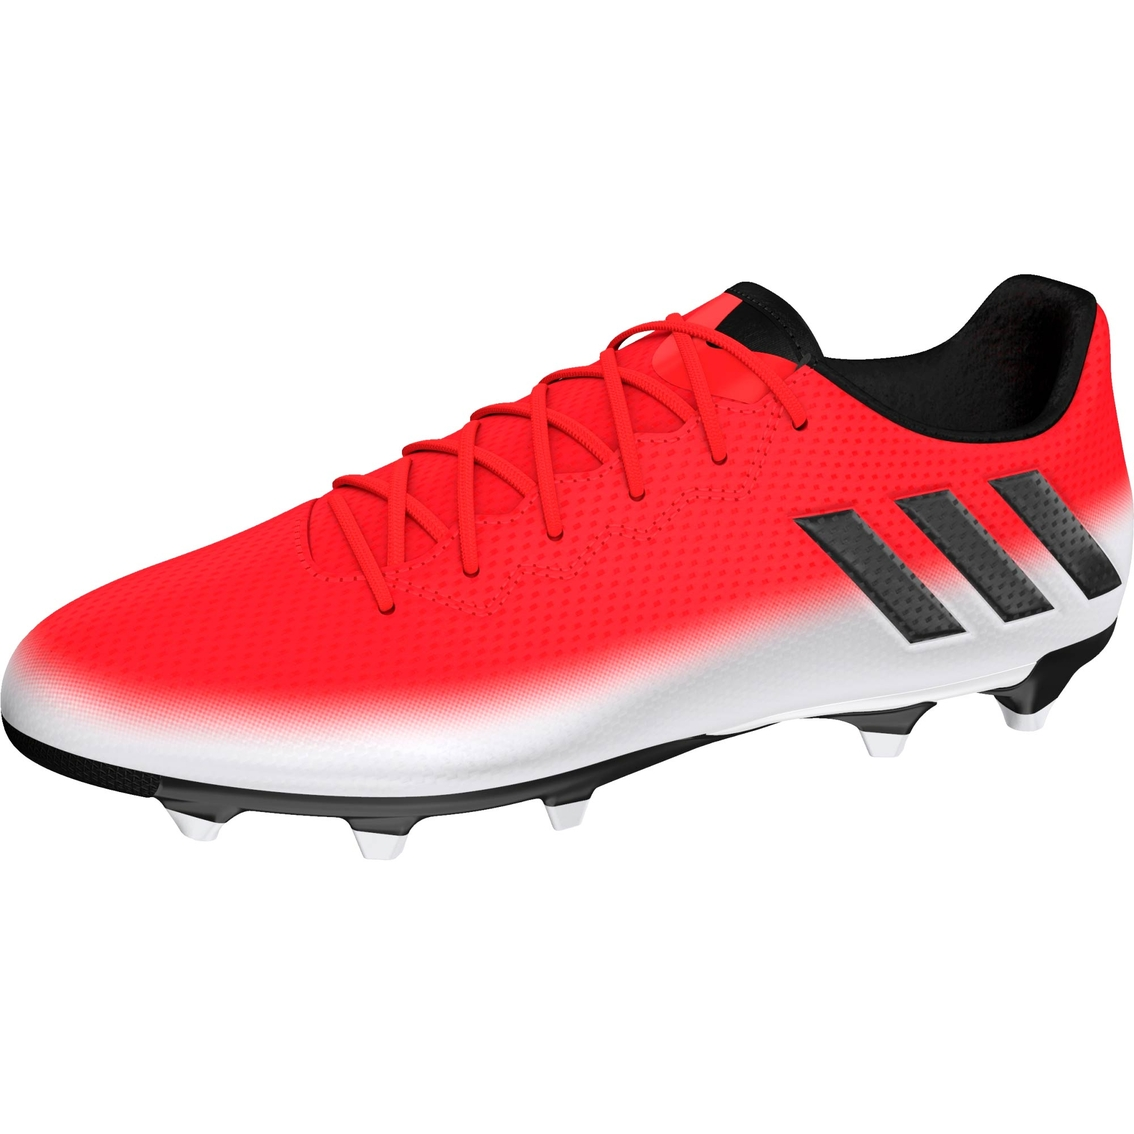 Adidas Men S Messi 16 3 Fg Soccer Cleats Soccer Shoes Shop The Exchange